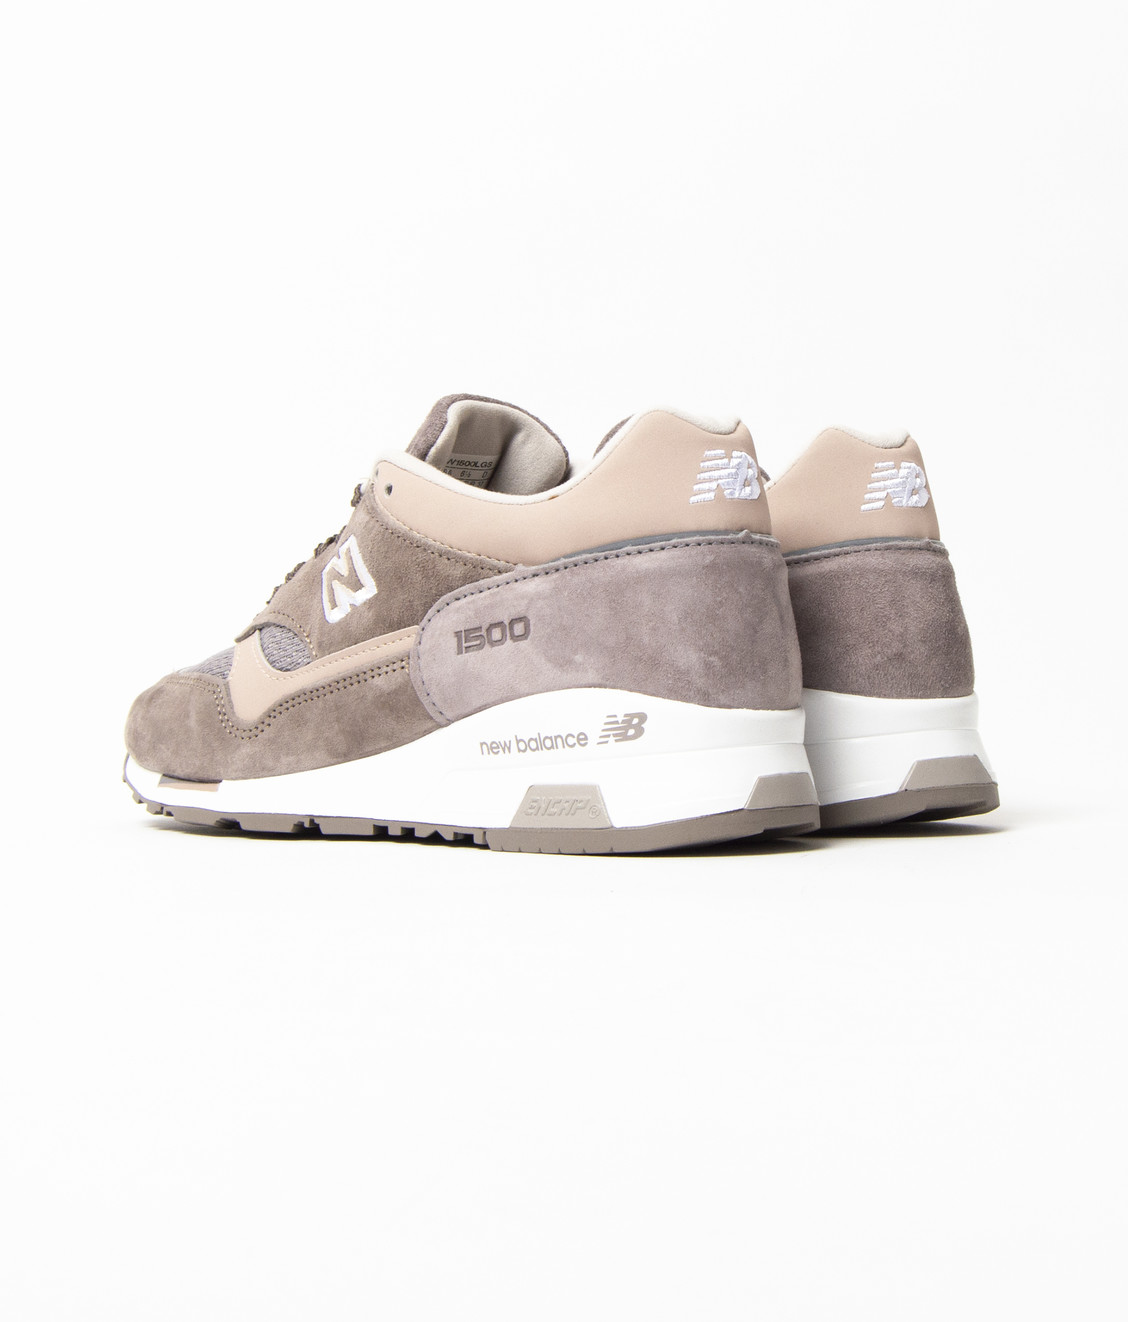 New Balance New Balance W 1500 LGS Grey UK